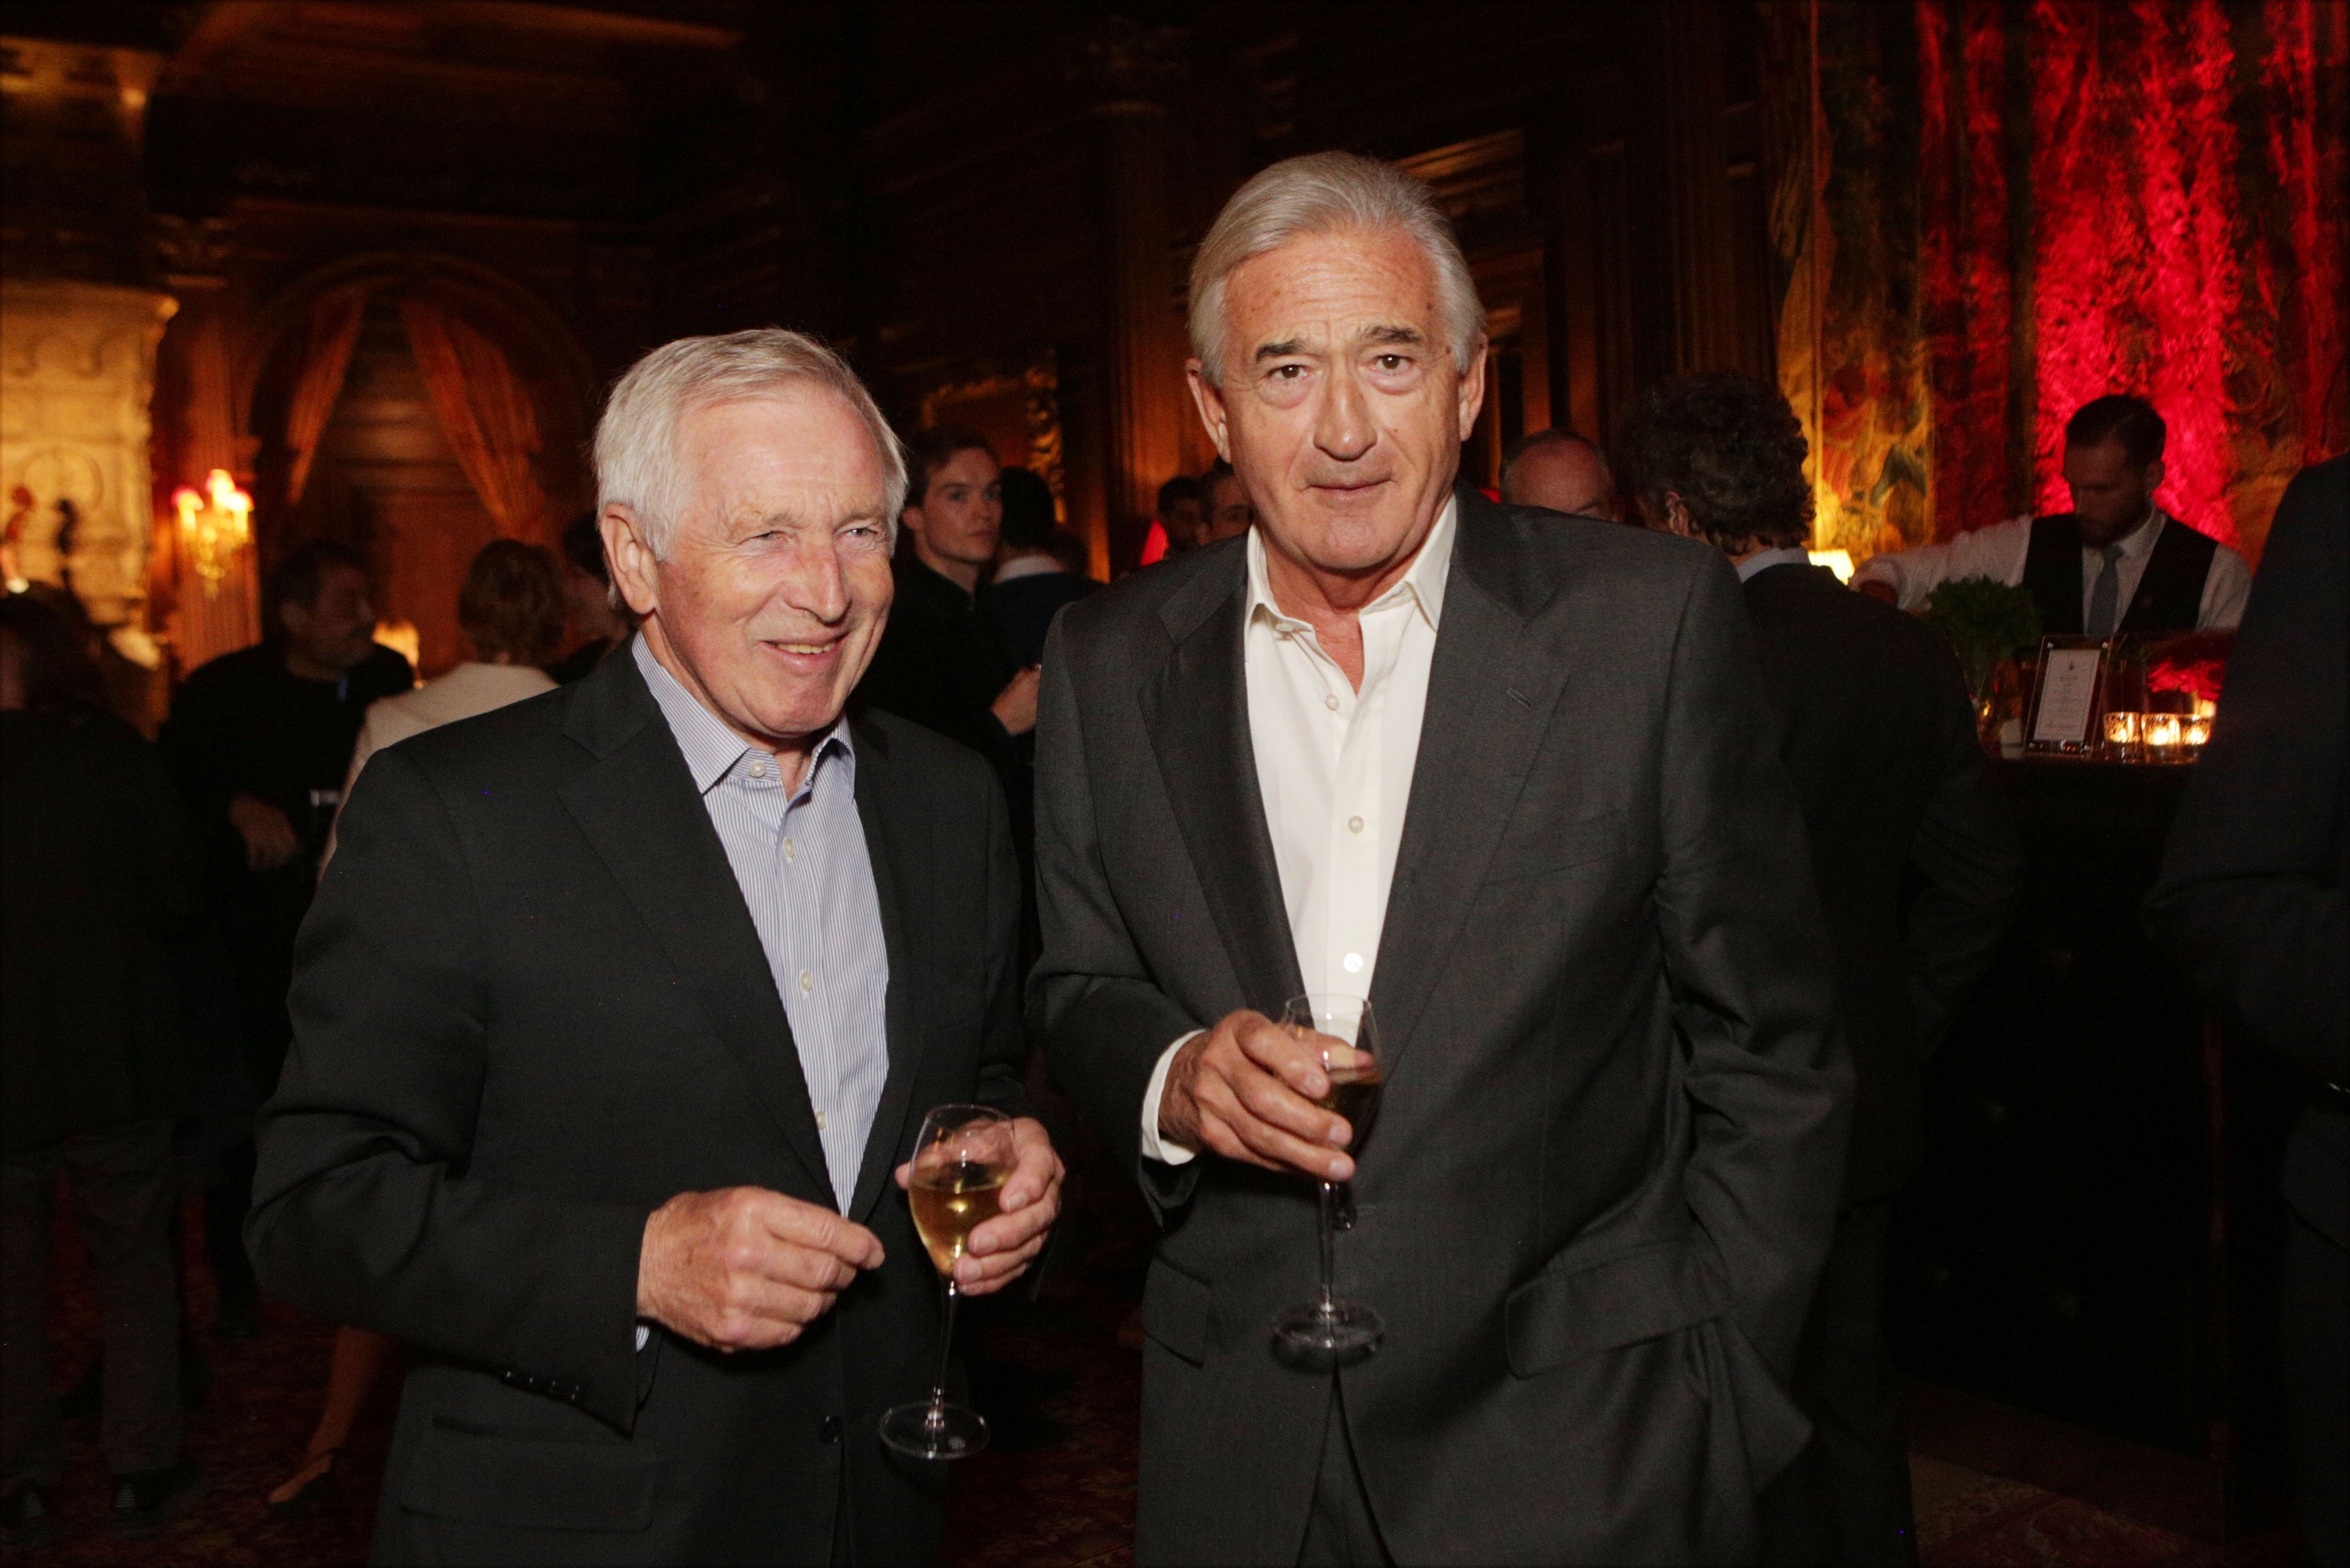 Jonathan Dimbleby and Antony Beevor at Cliveden Literary Festival